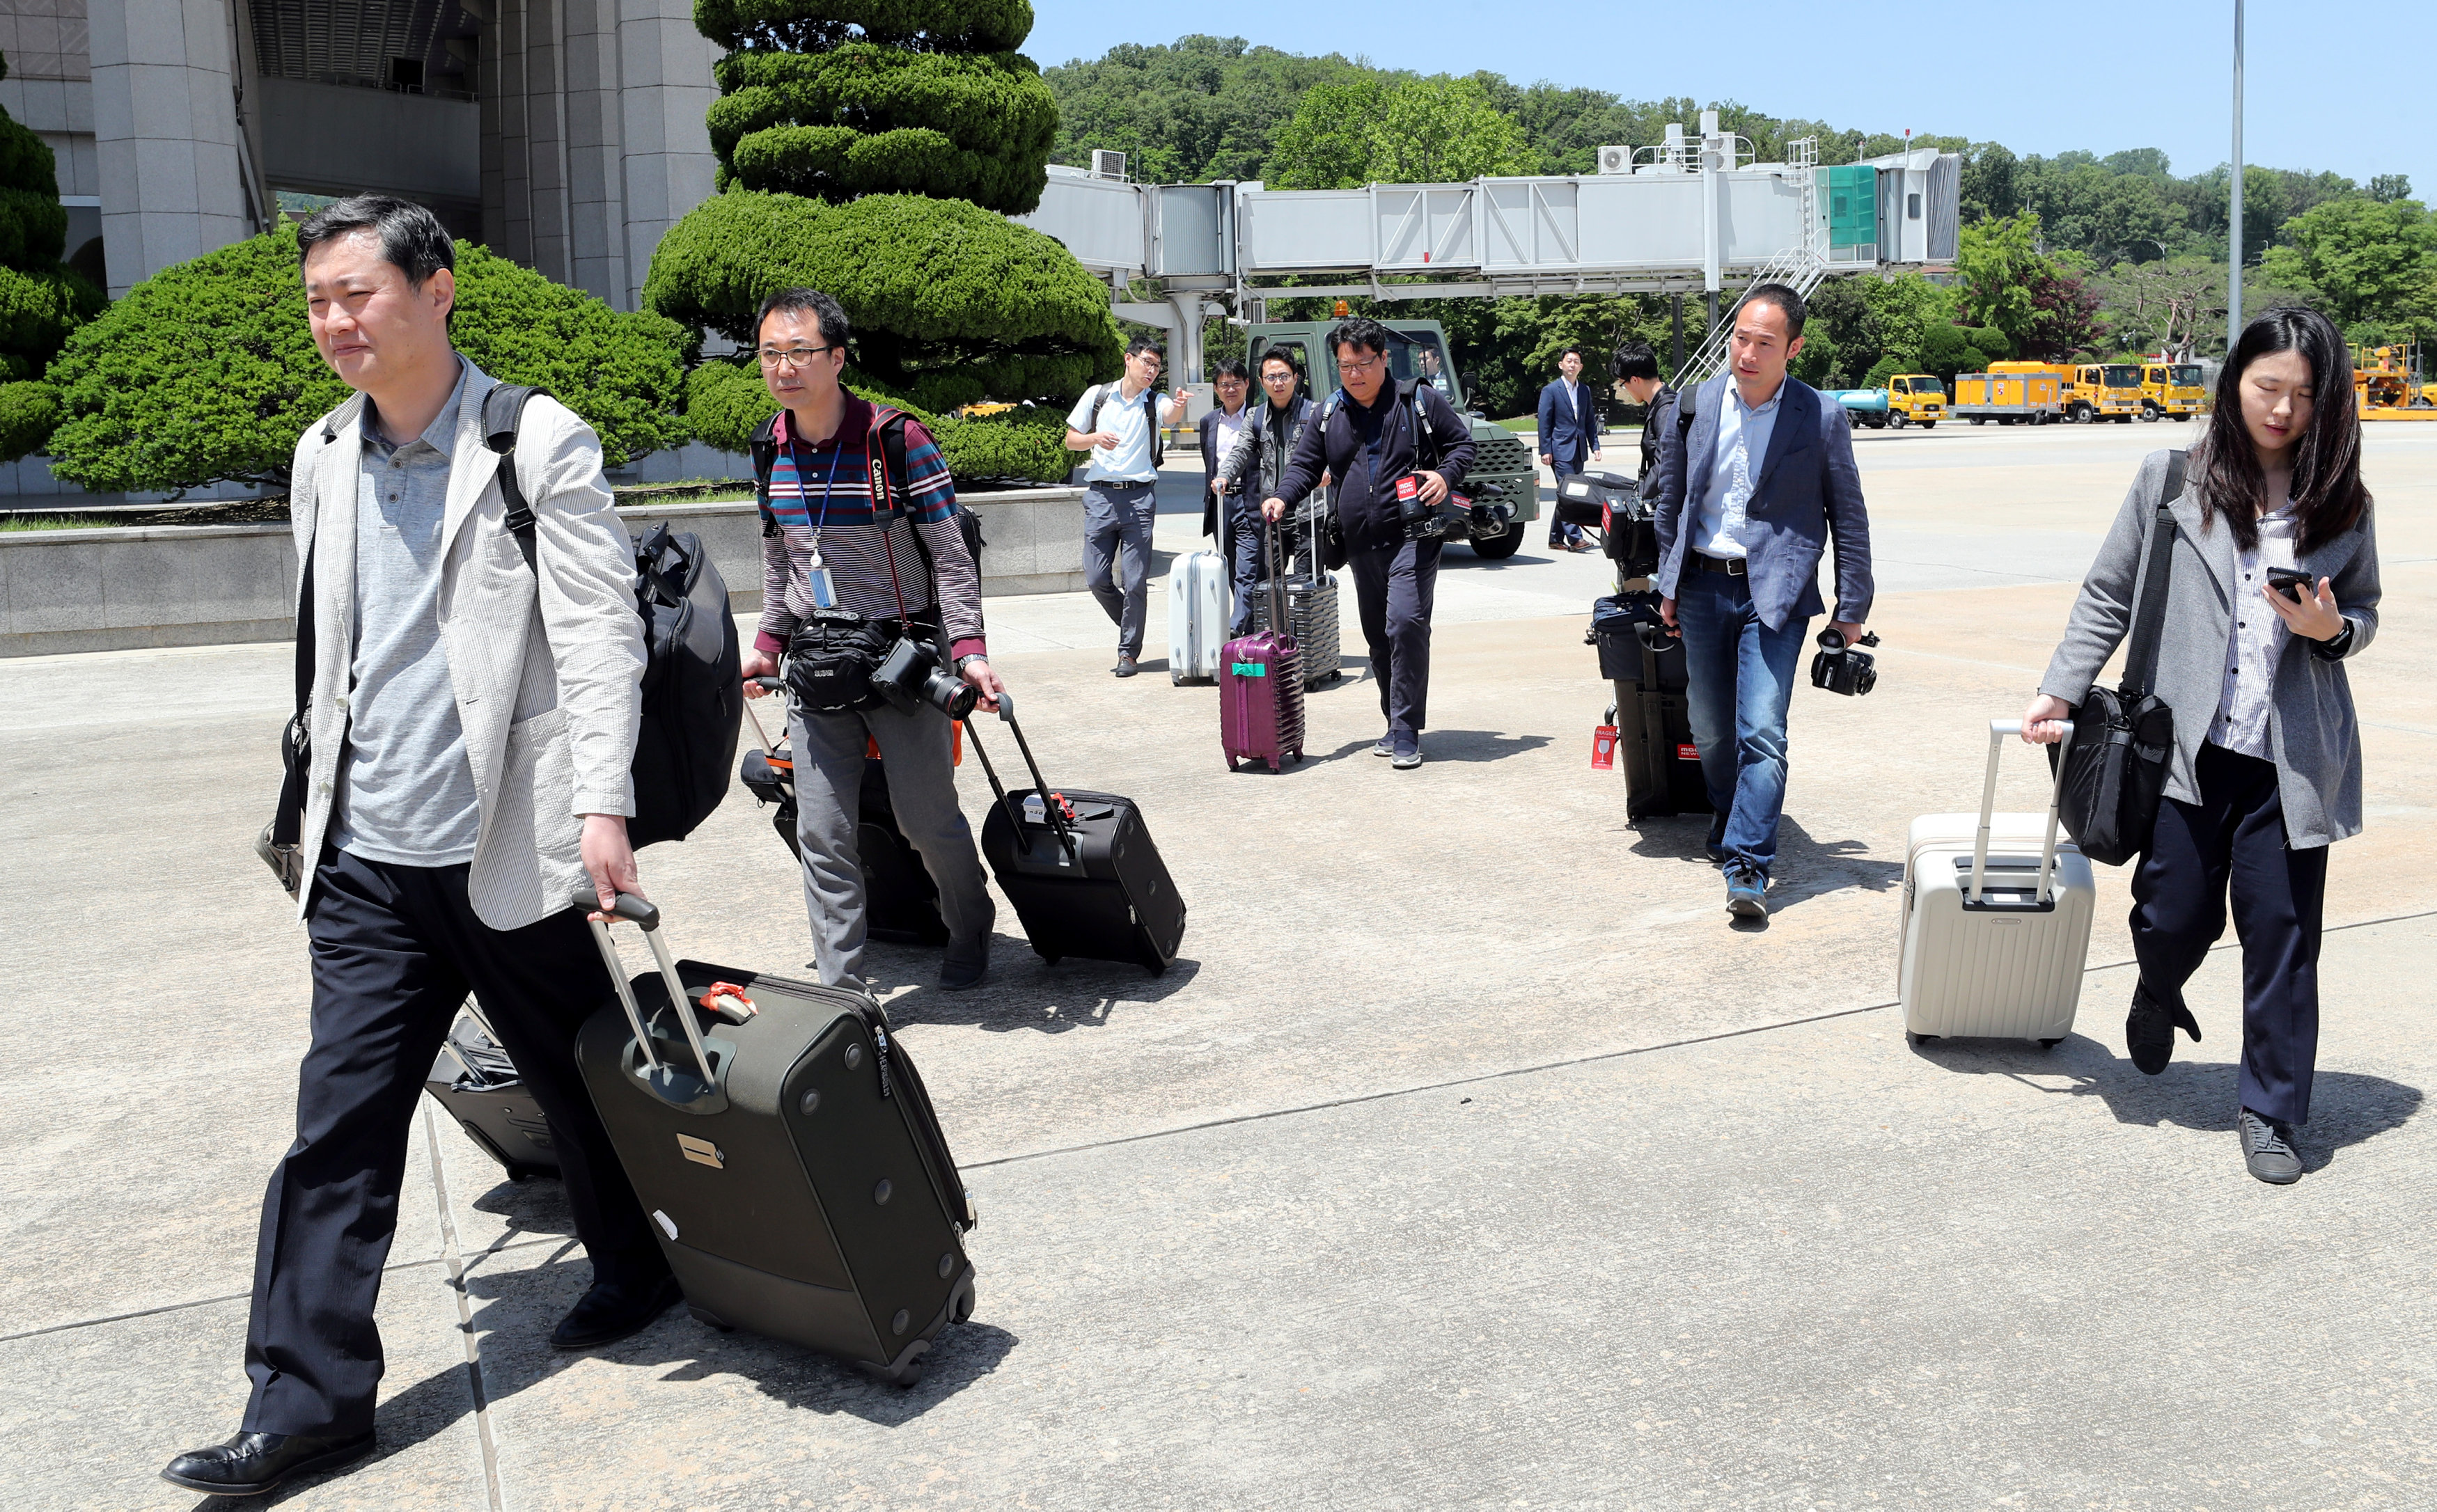 Members of a South Korean media group leave for the Wonsan airport, at Seoul Air Base in Seongnam, South Korea, May 23, 2018.    News1 via REUTERS   ATTENTION EDITORS - THIS IMAGE HAS BEEN SUPPLIED BY A THIRD PARTY. SOUTH KOREA OUT. NO RESALES. NO ARCHIVE.